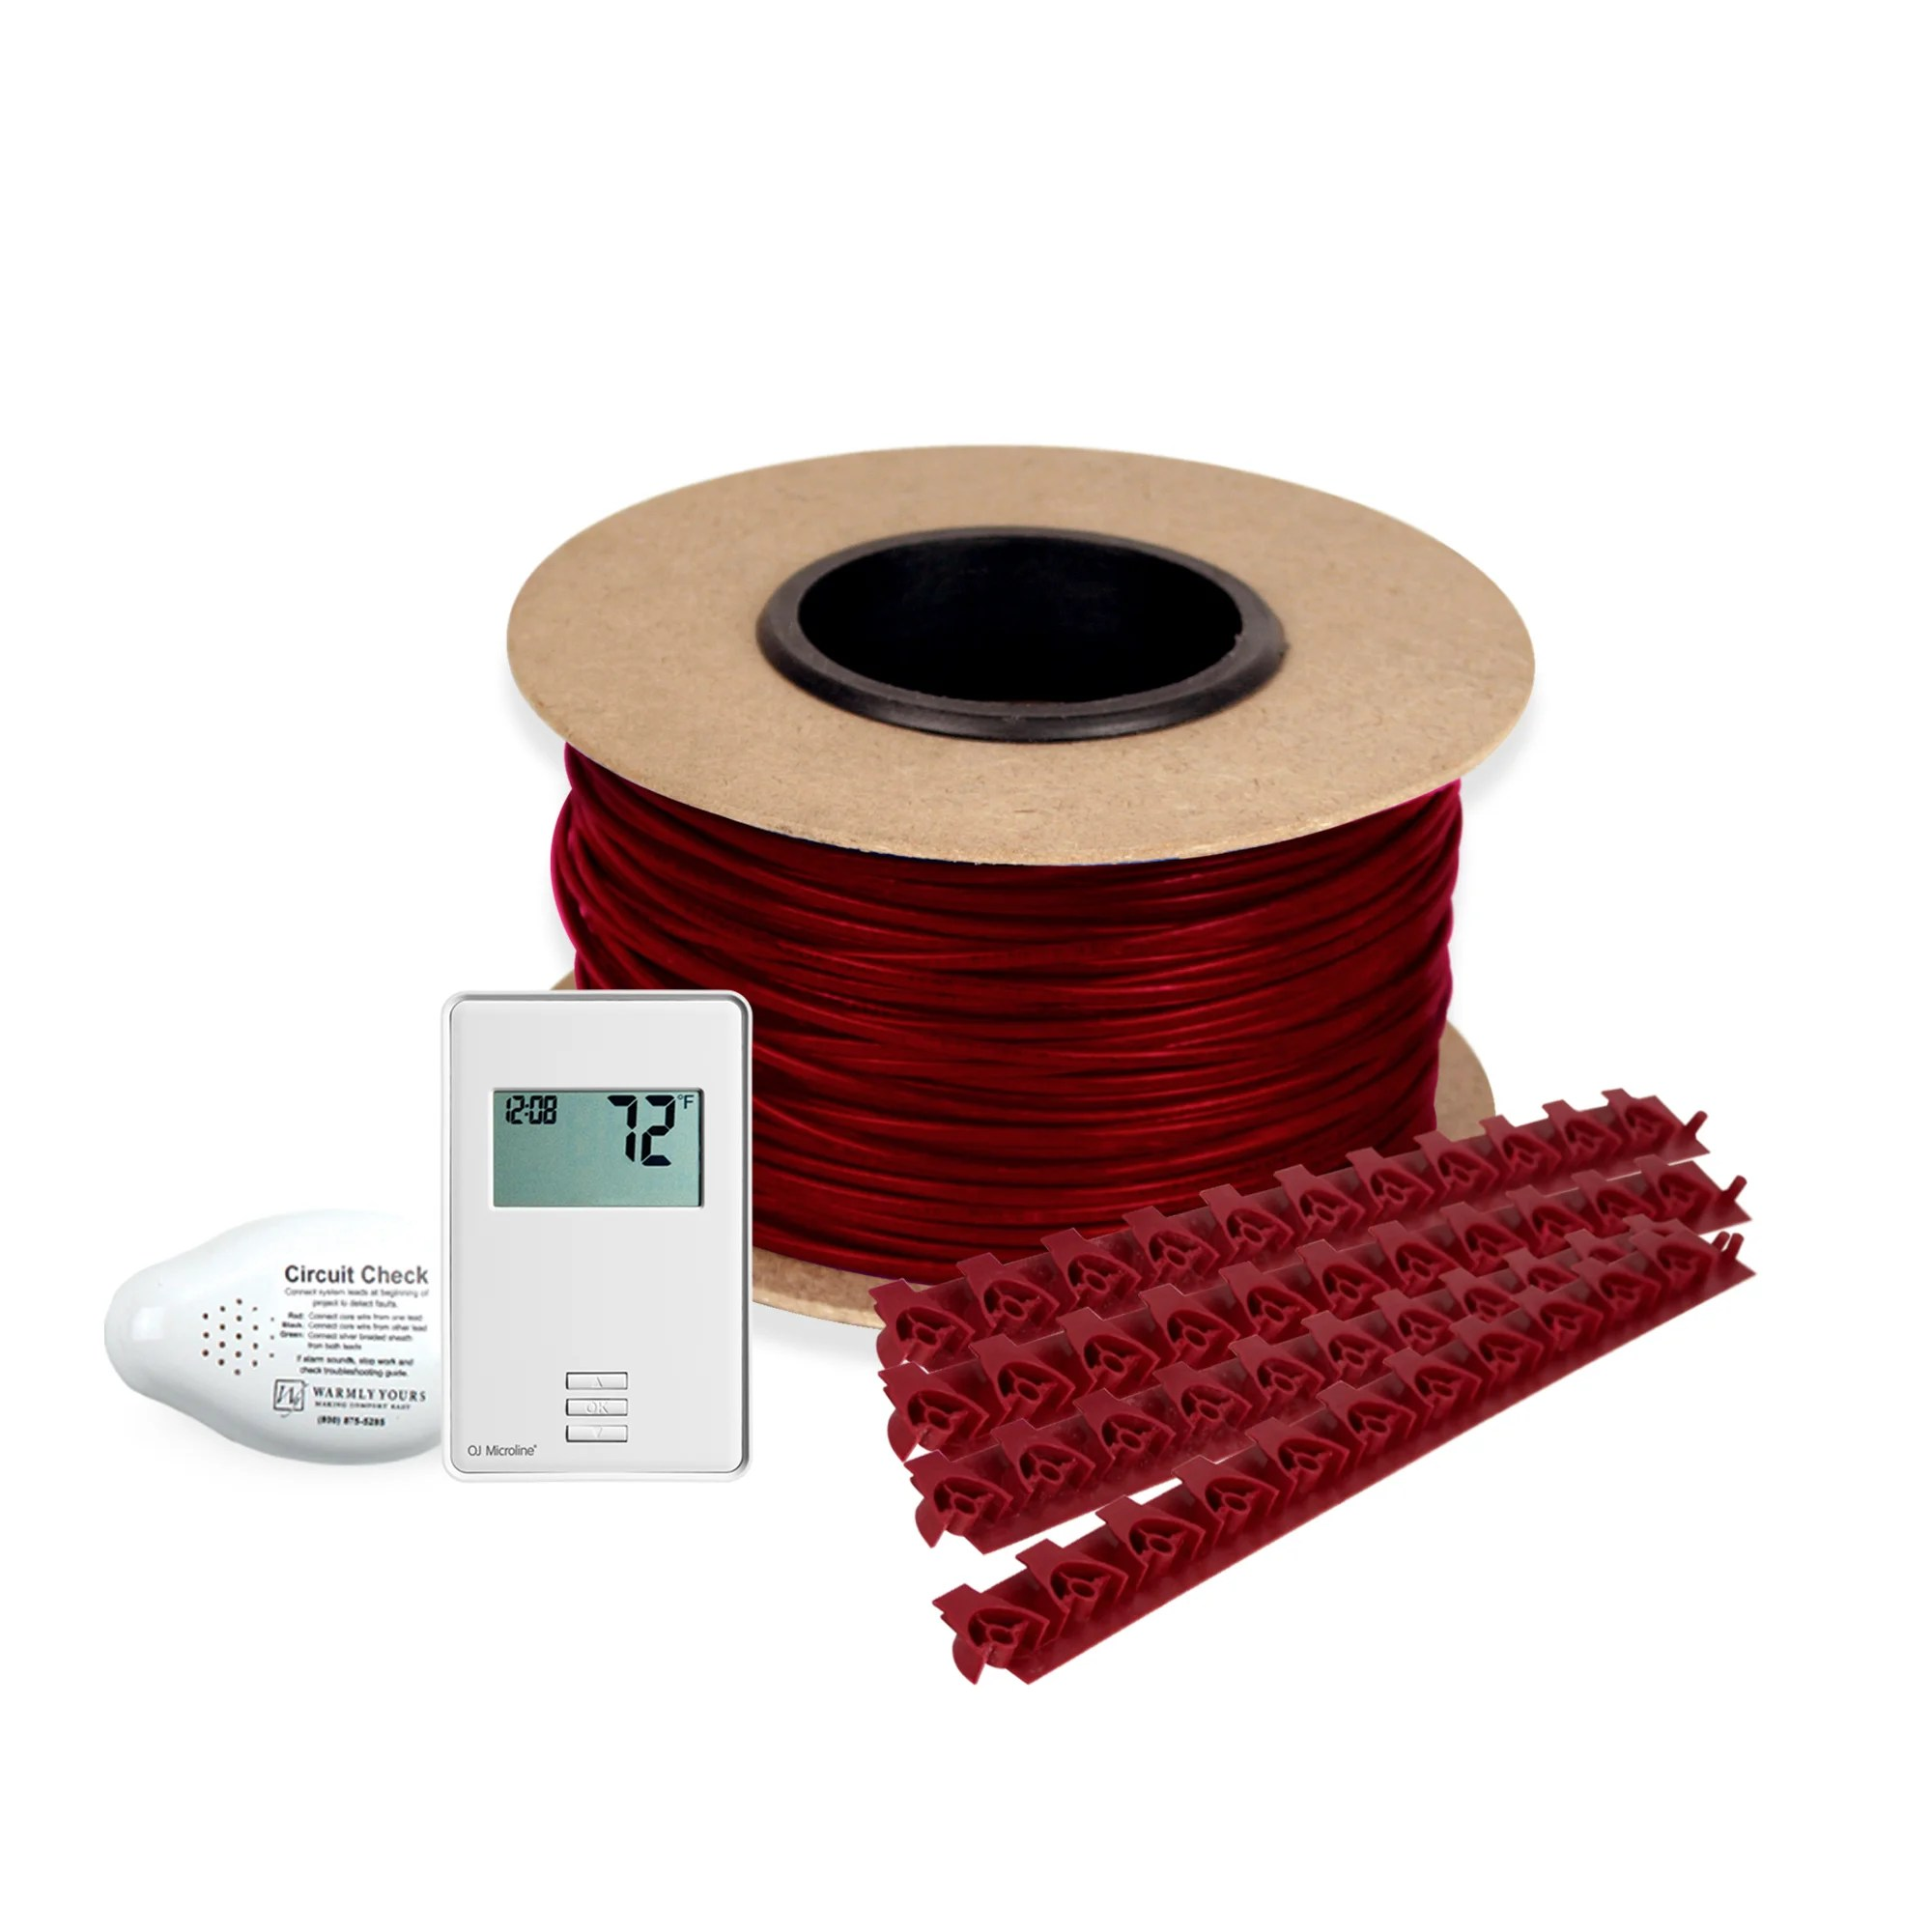 hight resolution of floor heating kit 120v tempzone cable system 30 non programmable thermostat tct120